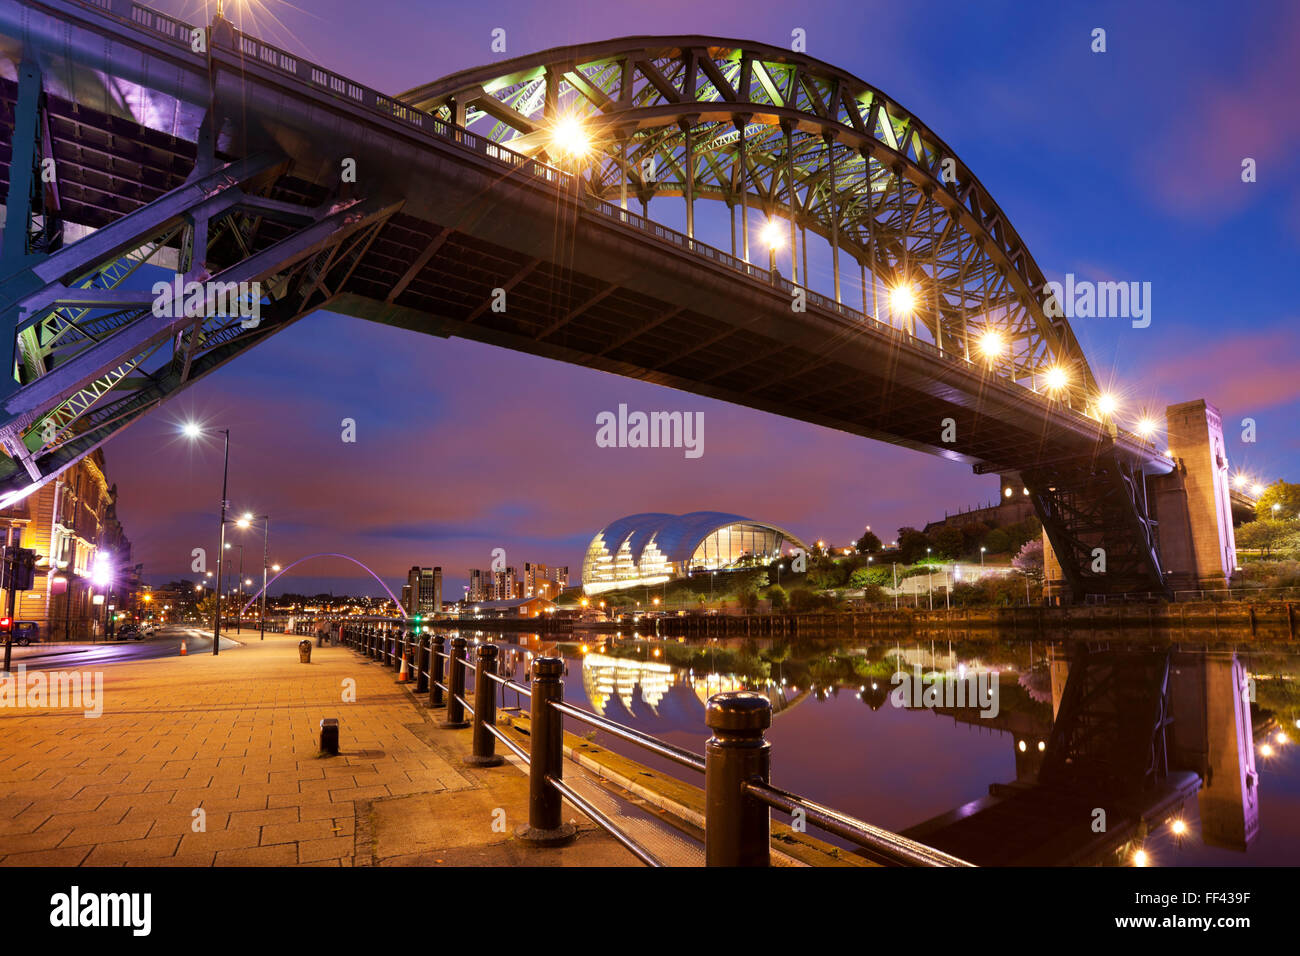 The Tyne Bridge over the river Tyne in Newcastle, England at night. - Stock Image